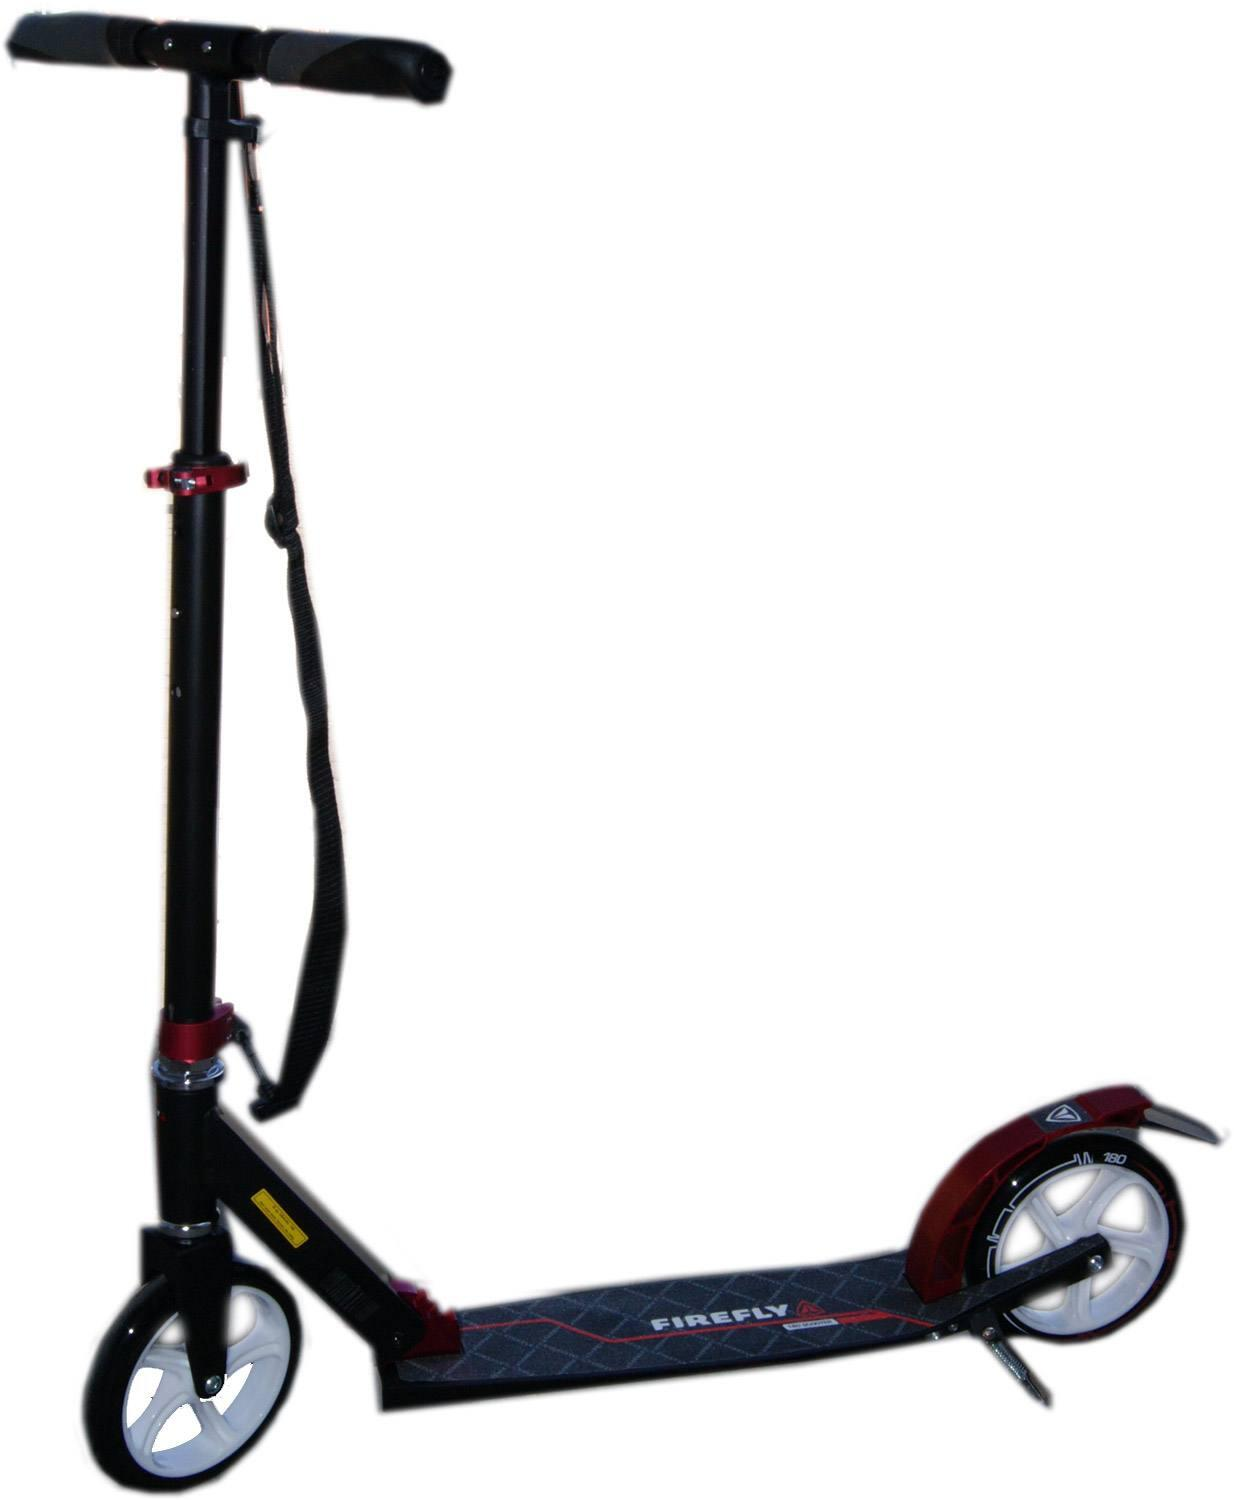 Firefly Scooter Sold 180